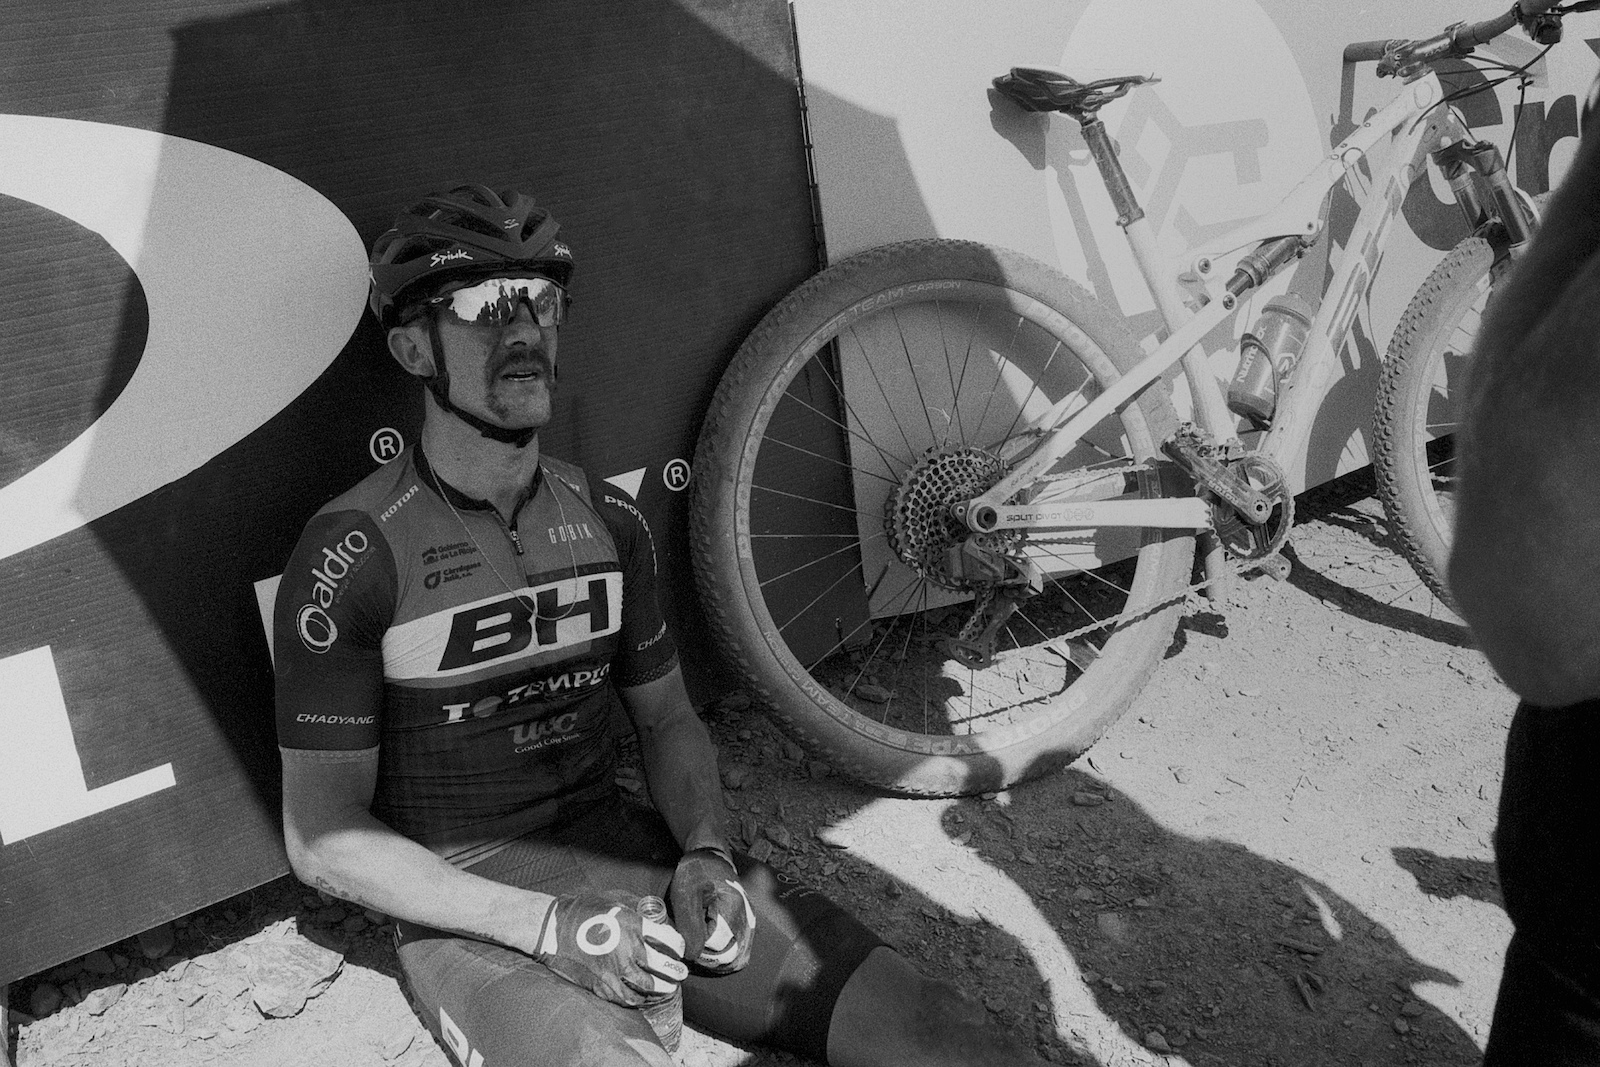 Lungs full of dust for Carlos Coloma back in Vallnord.